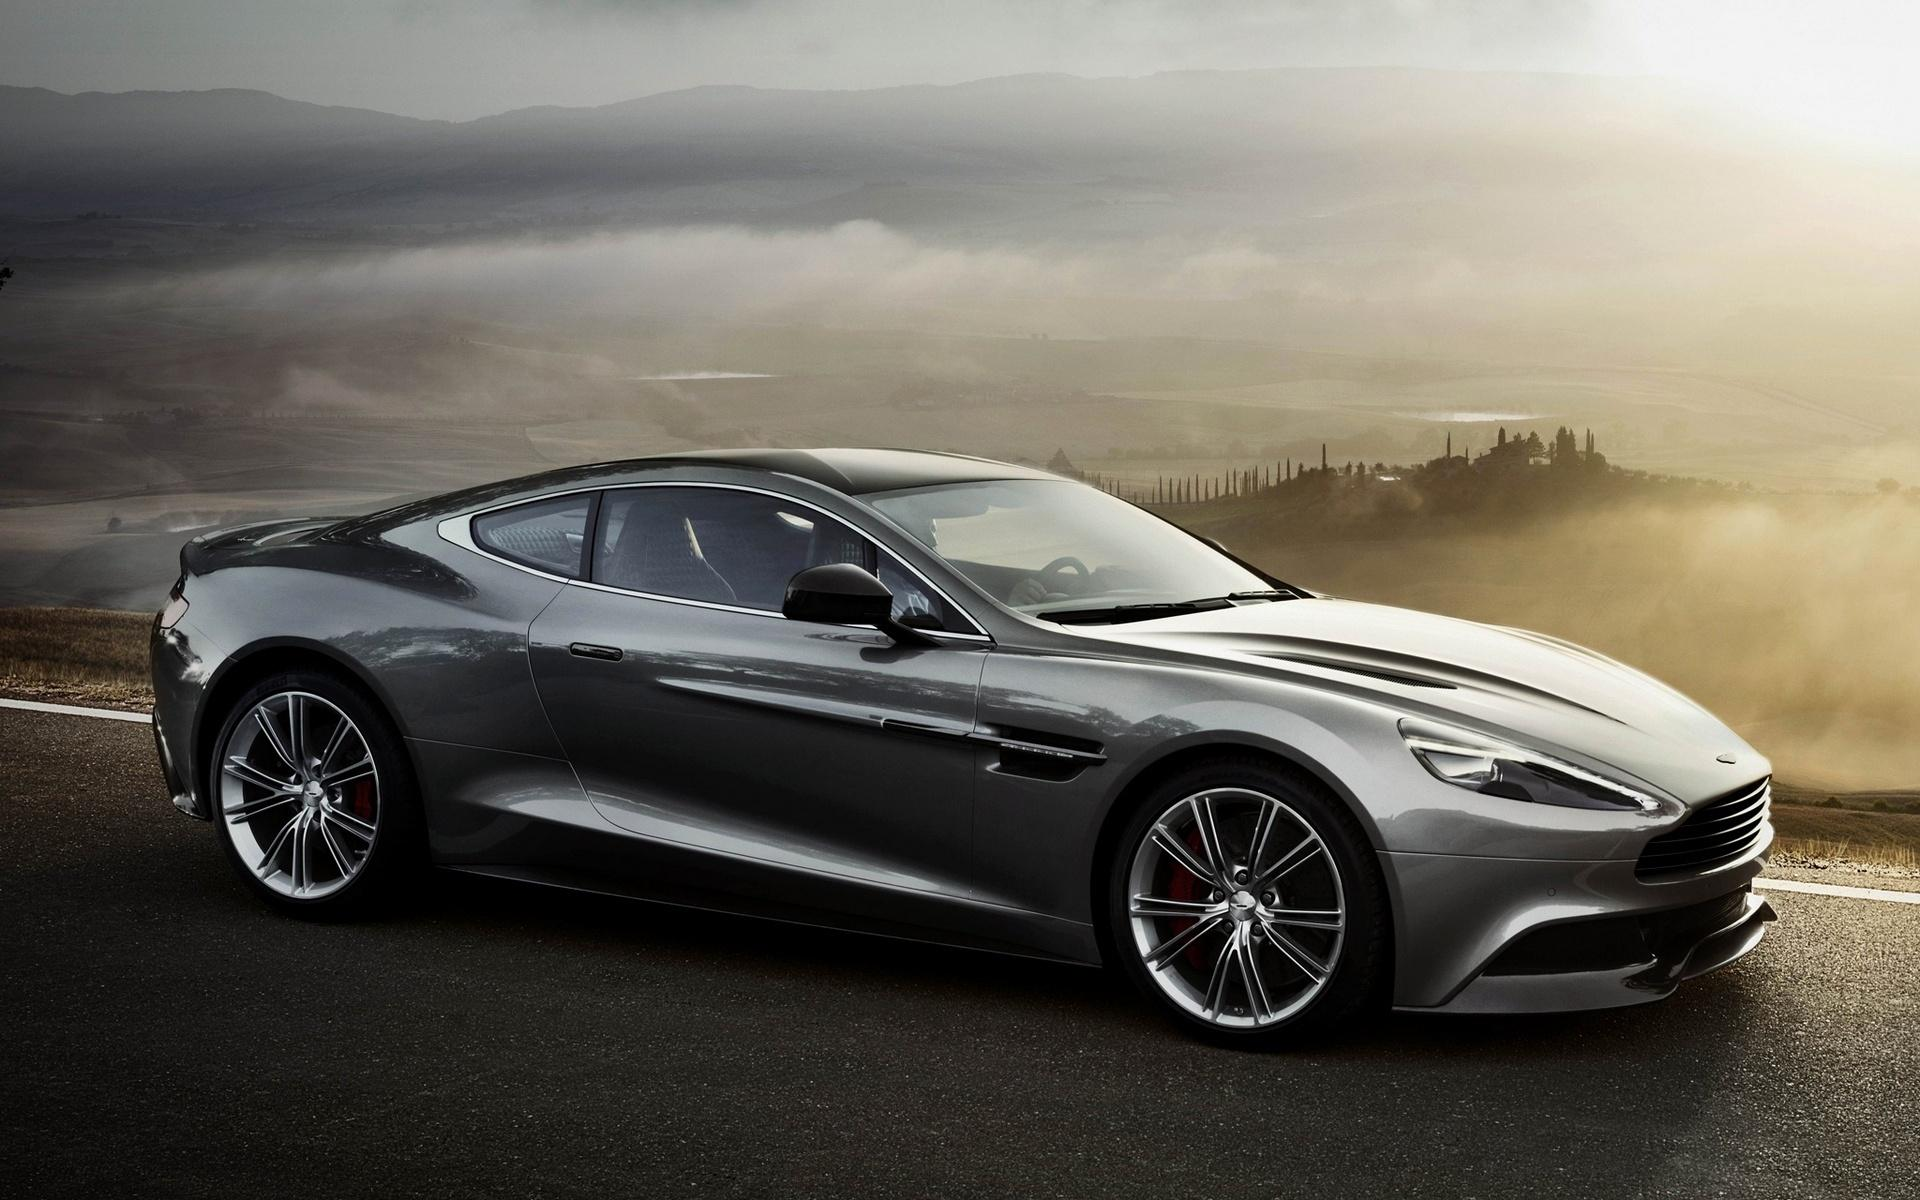 Pictures of aston martin v12 vanquish #2